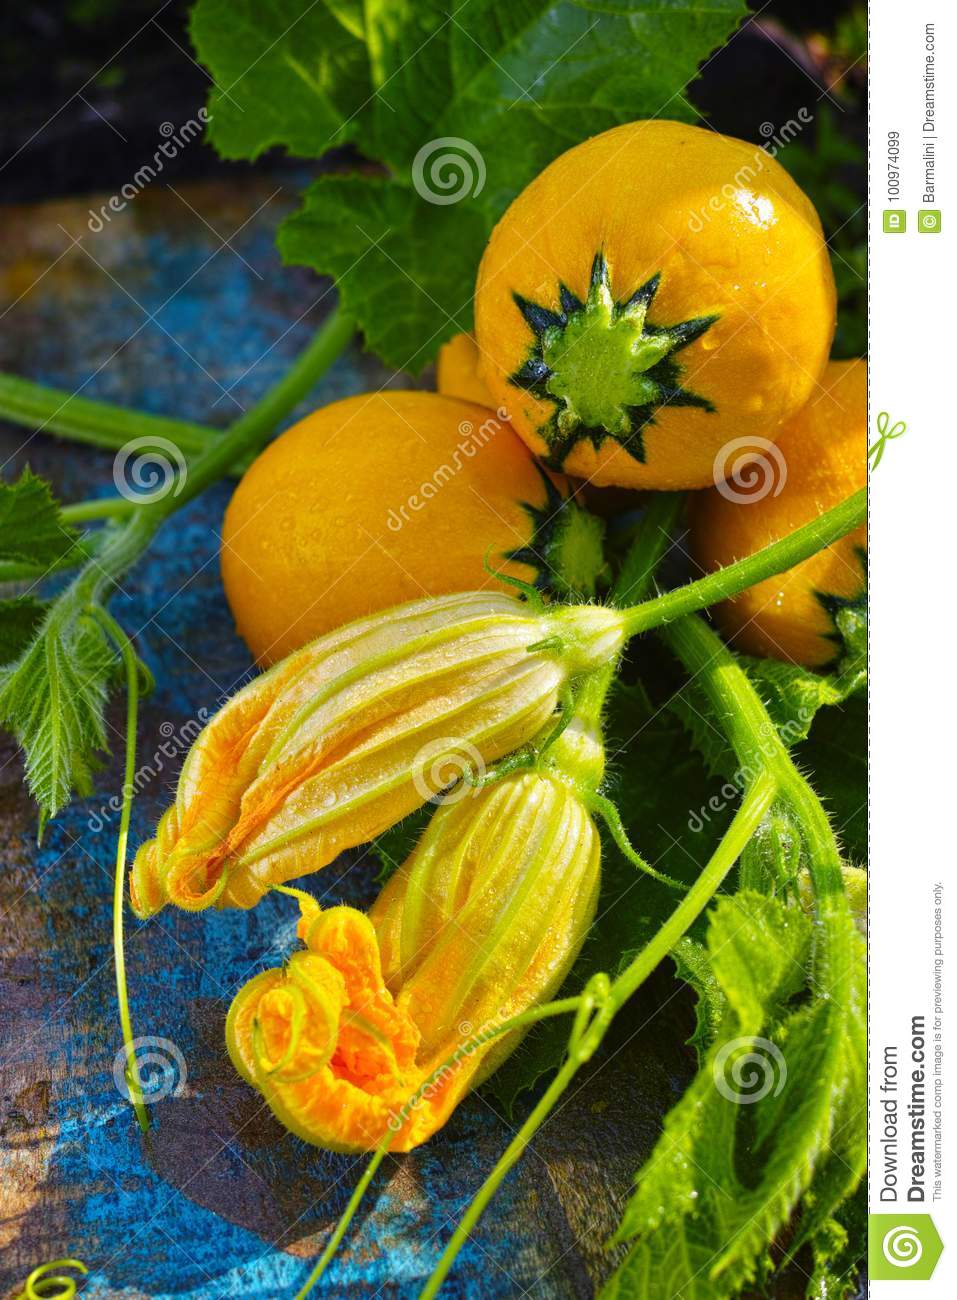 Round yellow zucchini and zucchini flowers fresh in the garden download round yellow zucchini and zucchini flowers fresh in the garden stock image mightylinksfo